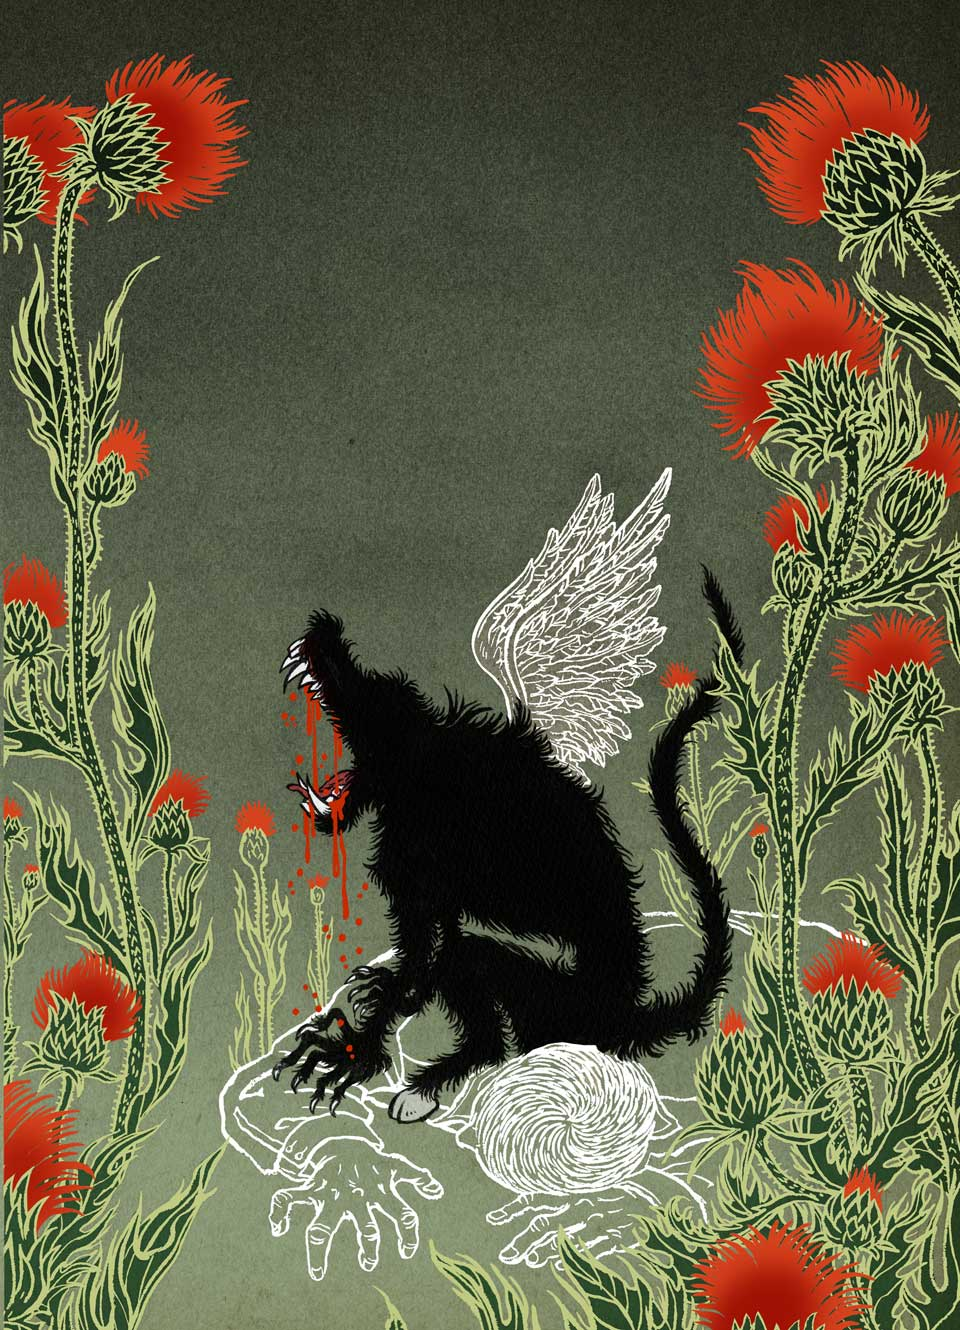 Yuko Shimizu - Monstrous Affections book cover -